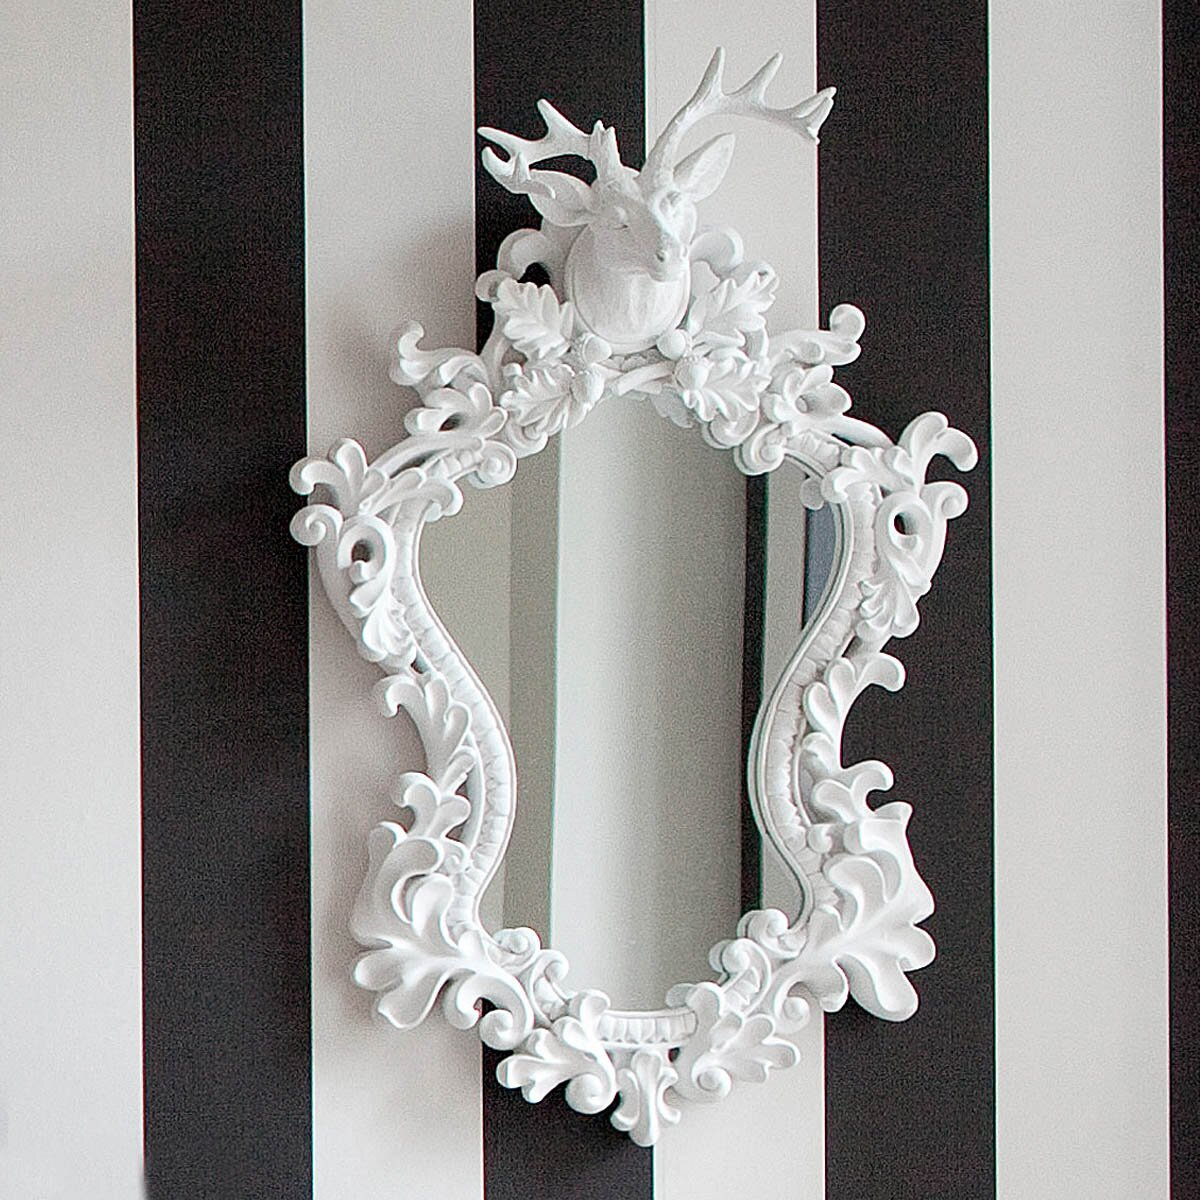 Beautiful Mirror 15 beautiful wall mirror designs | mostbeautifulthings